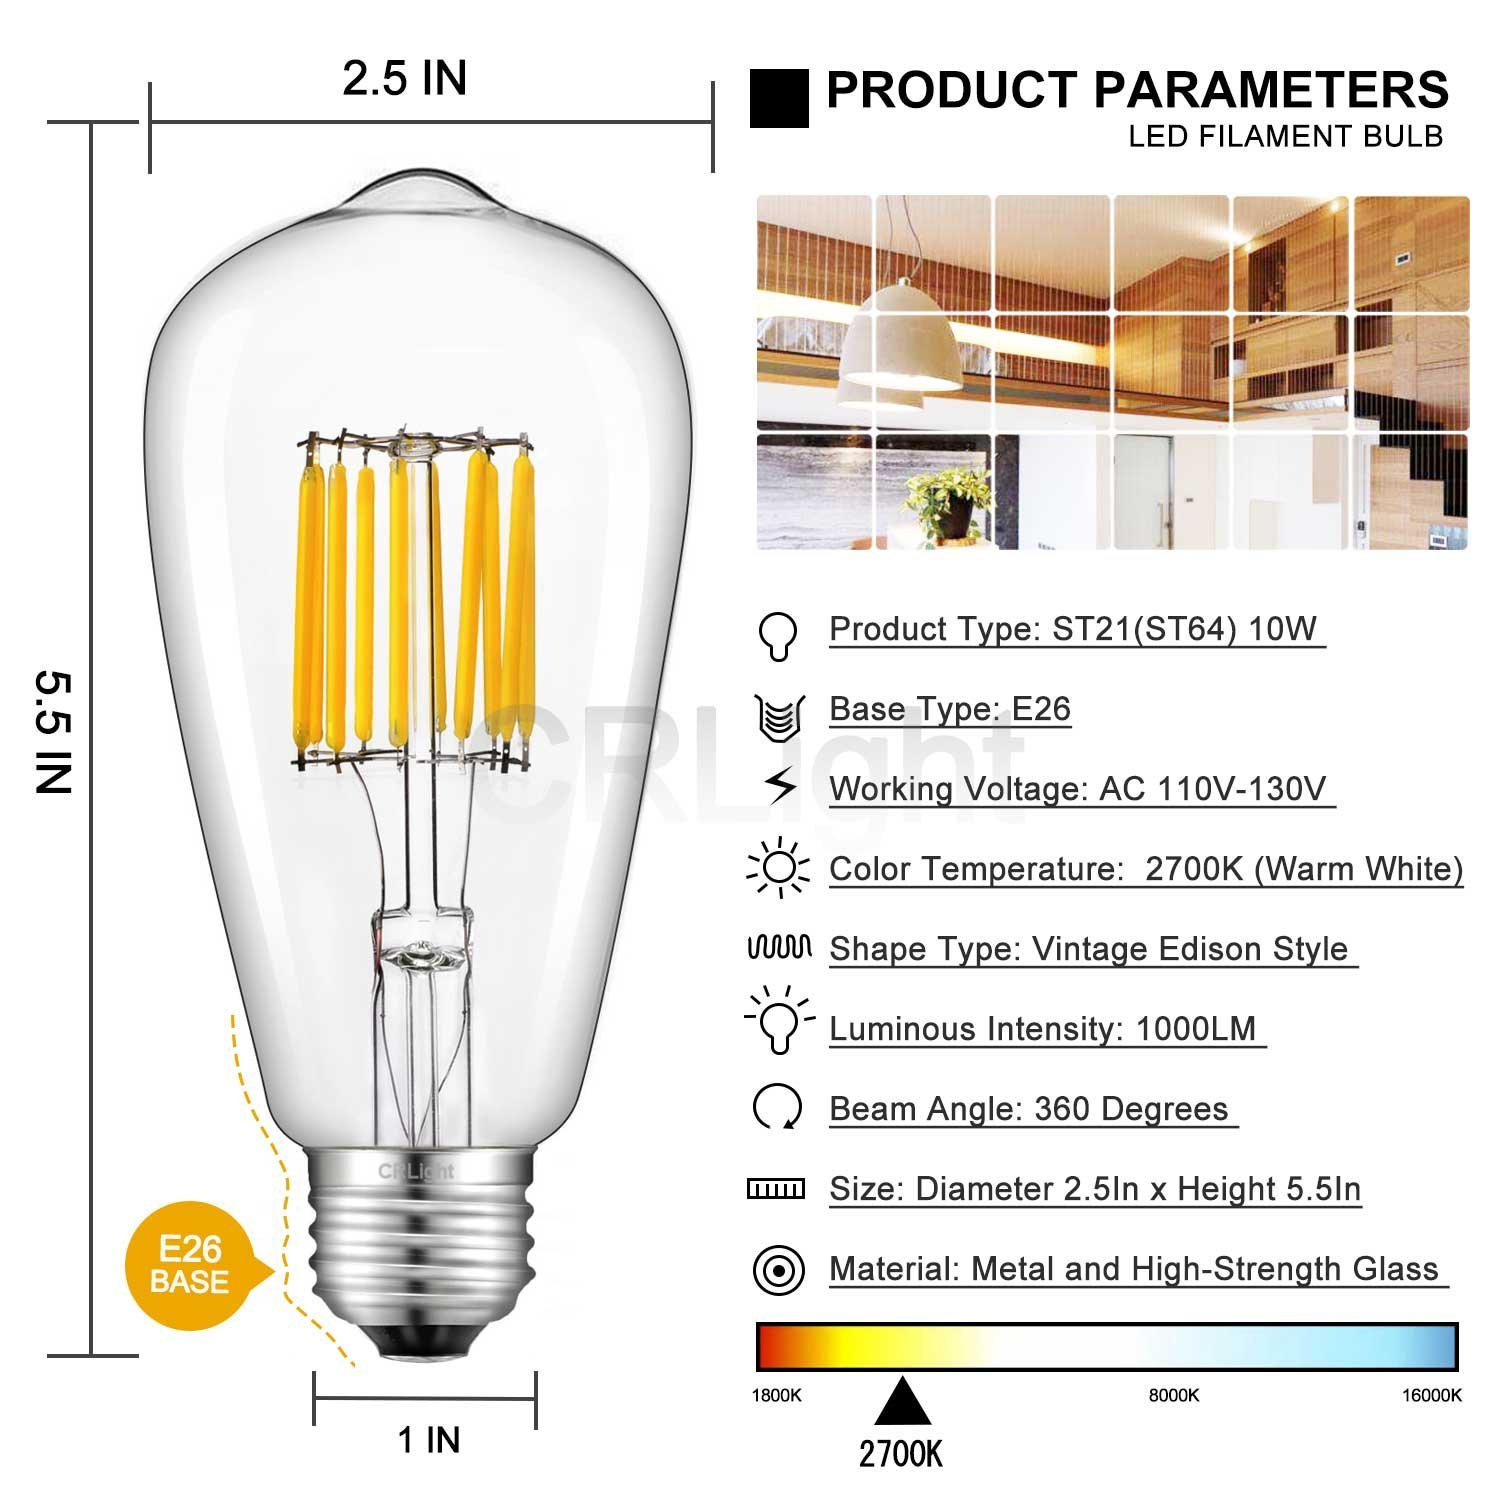 CRLight 10W LED Edison Bulb 5000K Daylight White 1000LM Non-dimmable 100W Incandescent Equivalent E26 Medium Base ST64 Vintage LED Filament Bulbs Replace 20W Compact Fluorescent CFL Bulbs